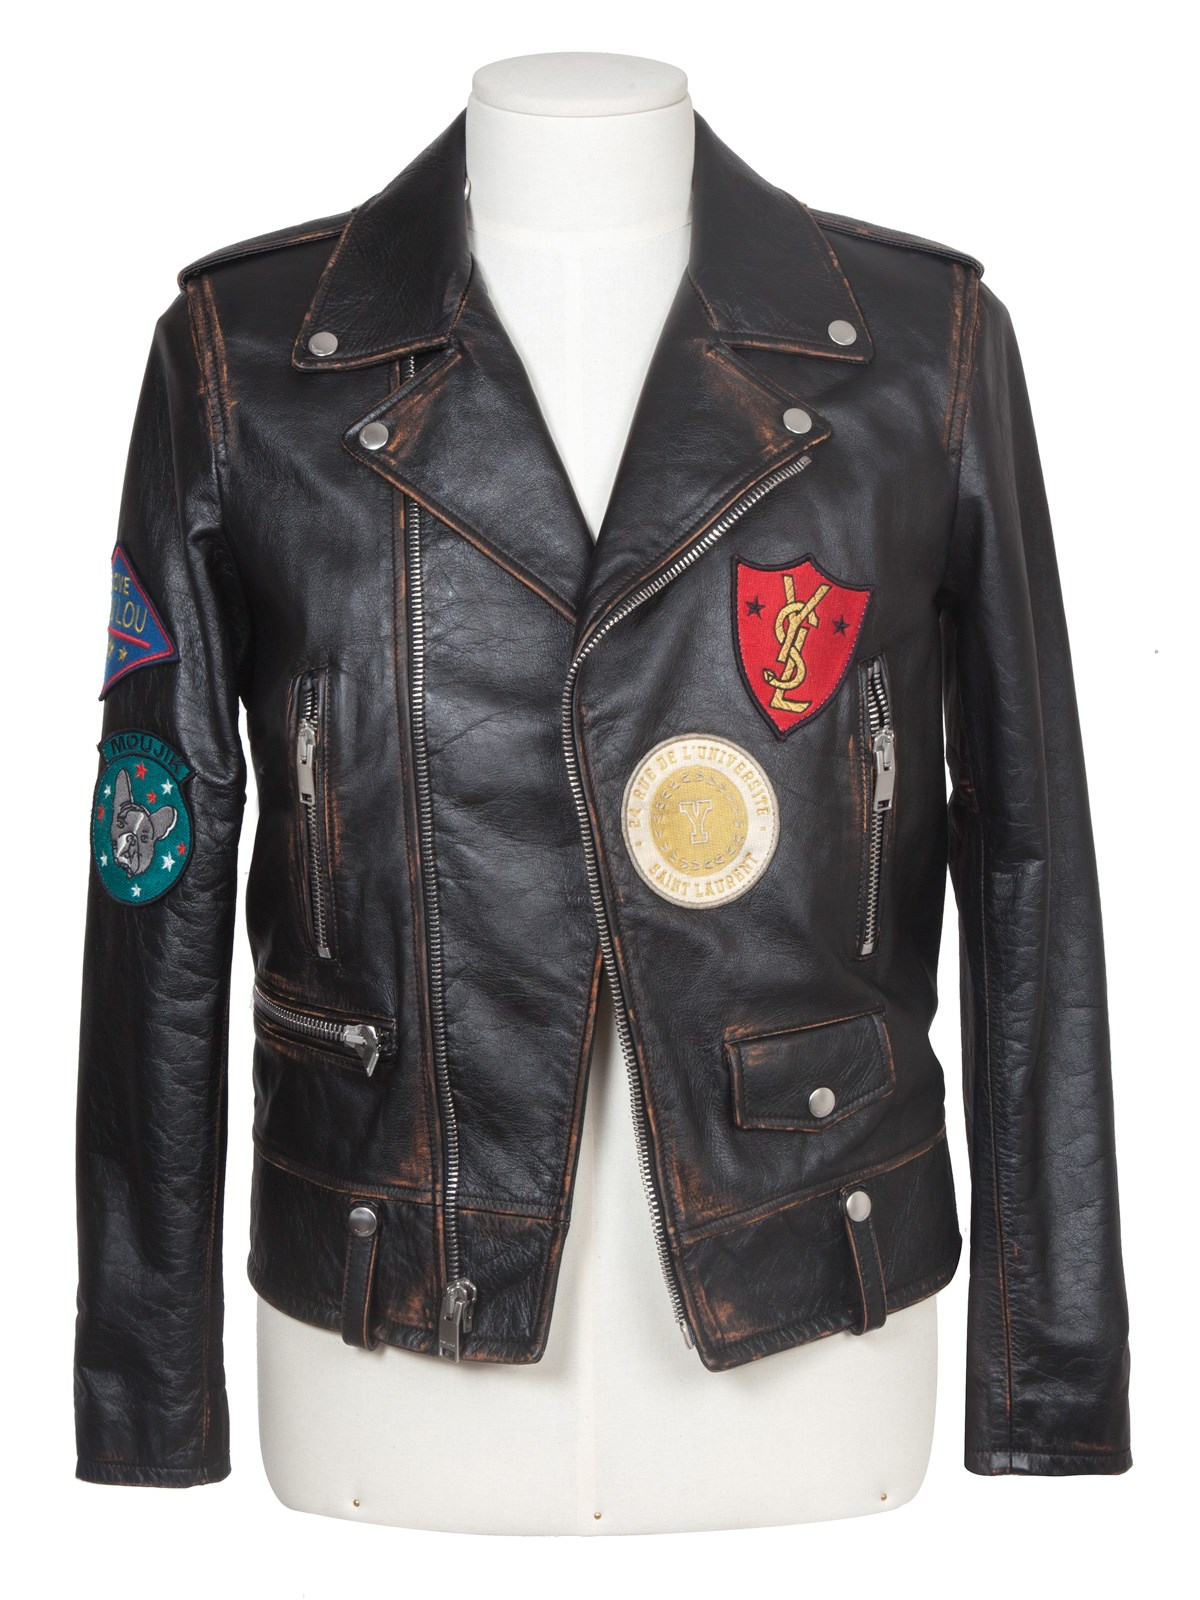 0207c3e8a46 saint laurent CLASSIC MULTI-PATCH MOTORCYCLE JACKET available on ...